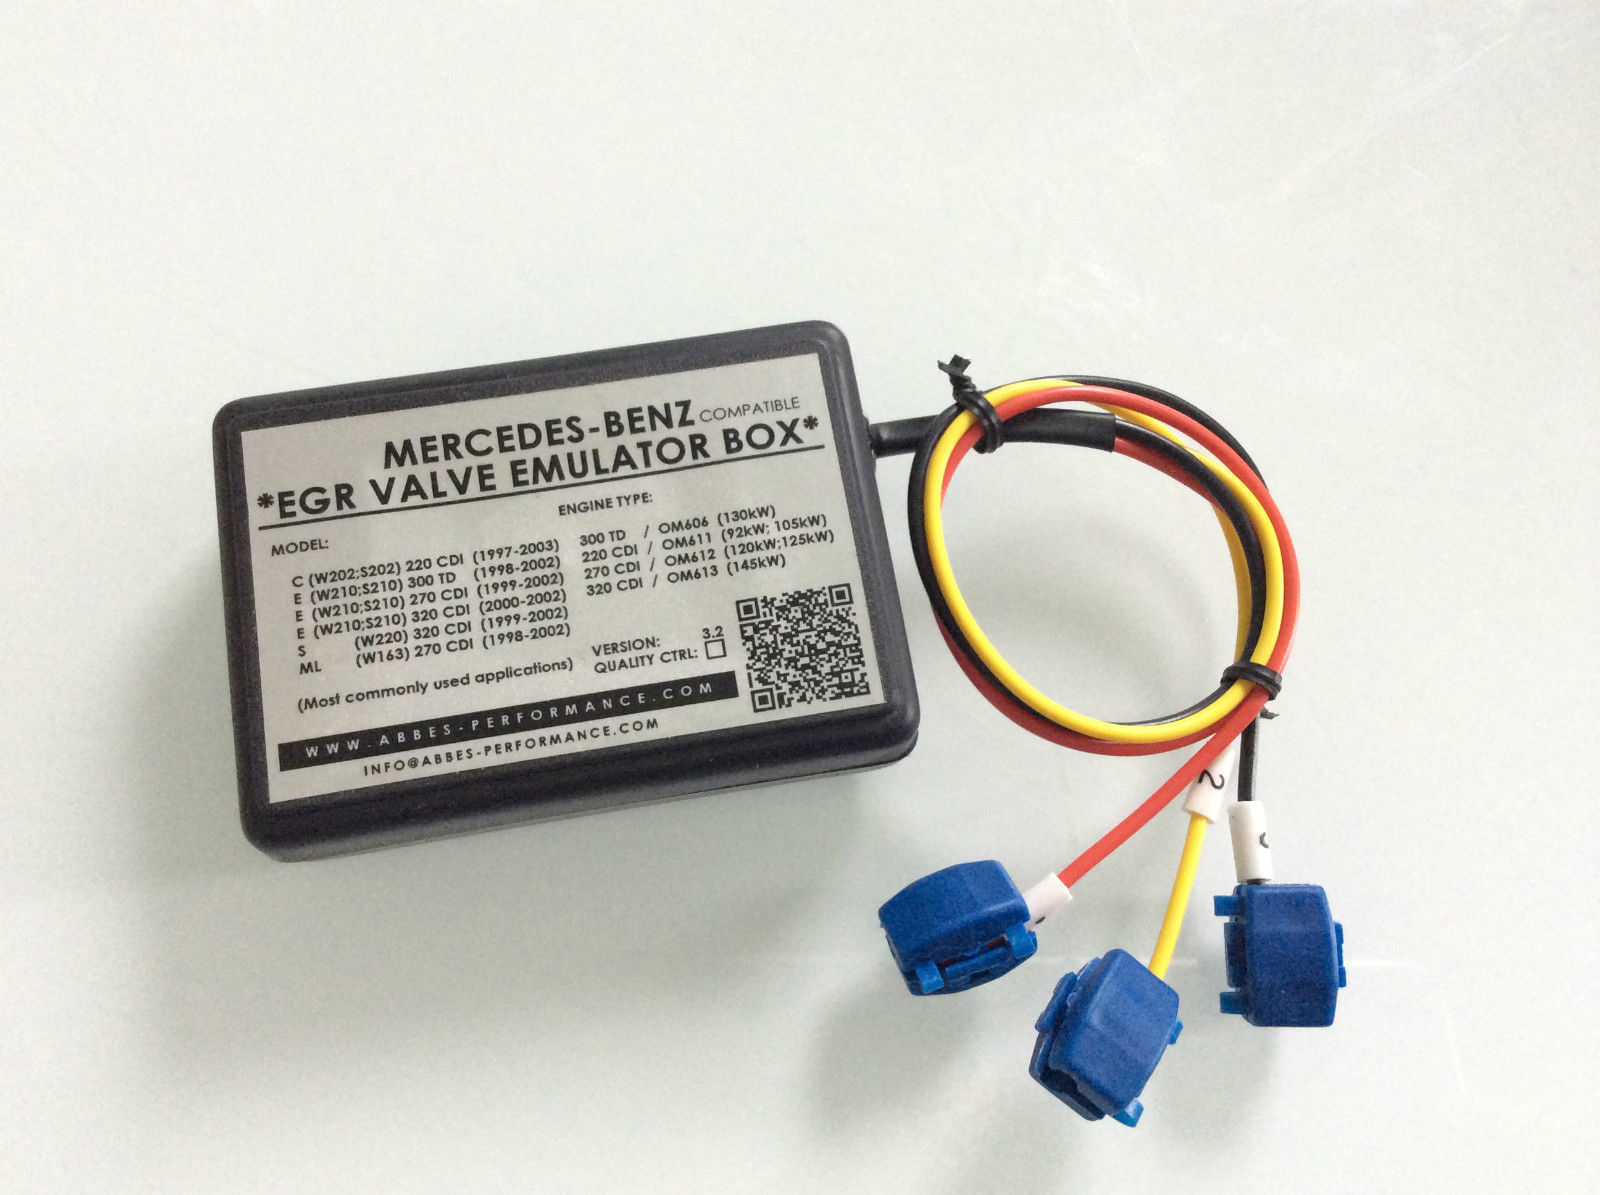 Egr Valve Emulator Box Mercedes C E S Ml 220 Cdi 270cdi W163 Wiring Diagram Detailed Photo Of The Product